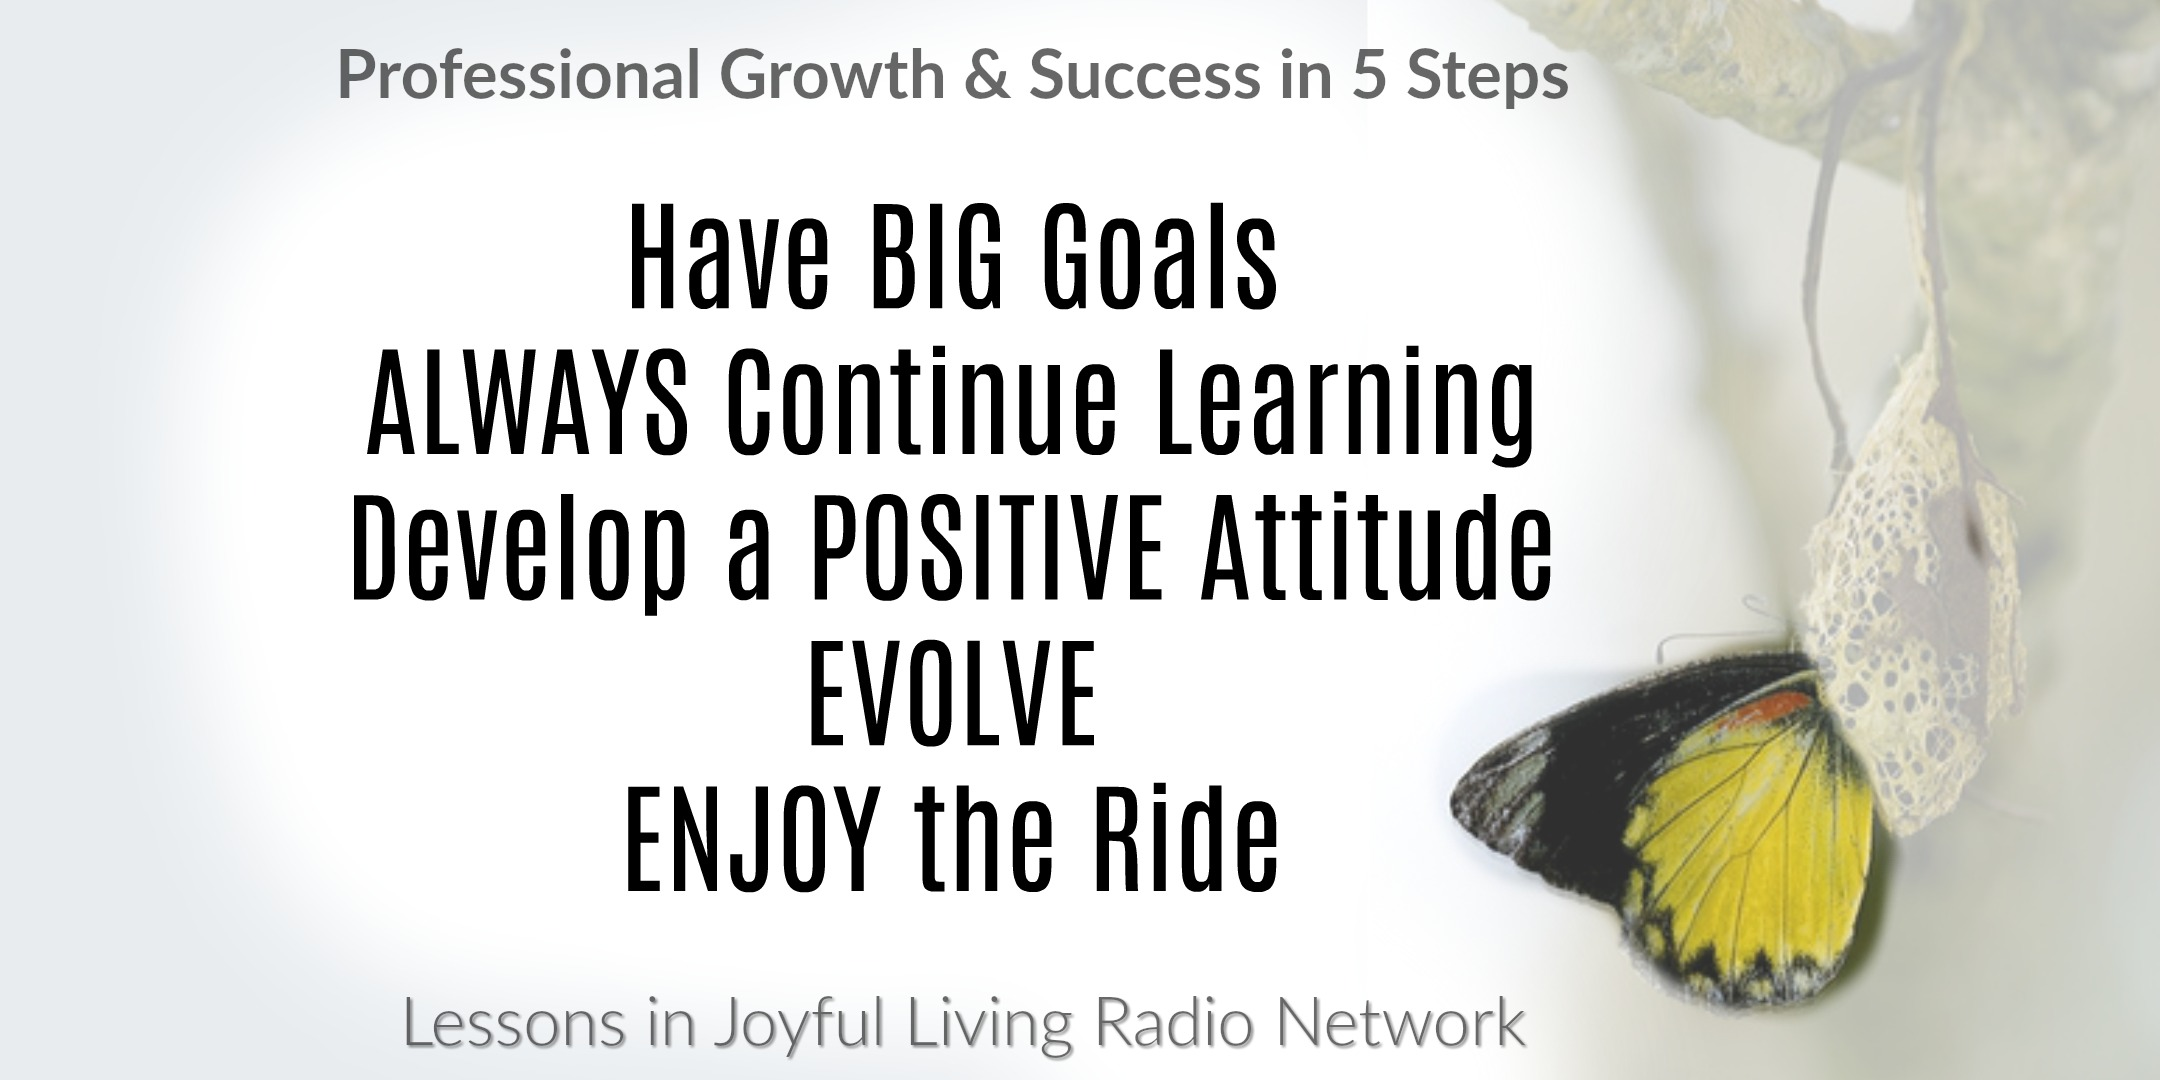 professional growth, LiJLNetwork.com, Kimberly Rinaldi, Lessons in Joyful Living, build business, internet radio, podcast